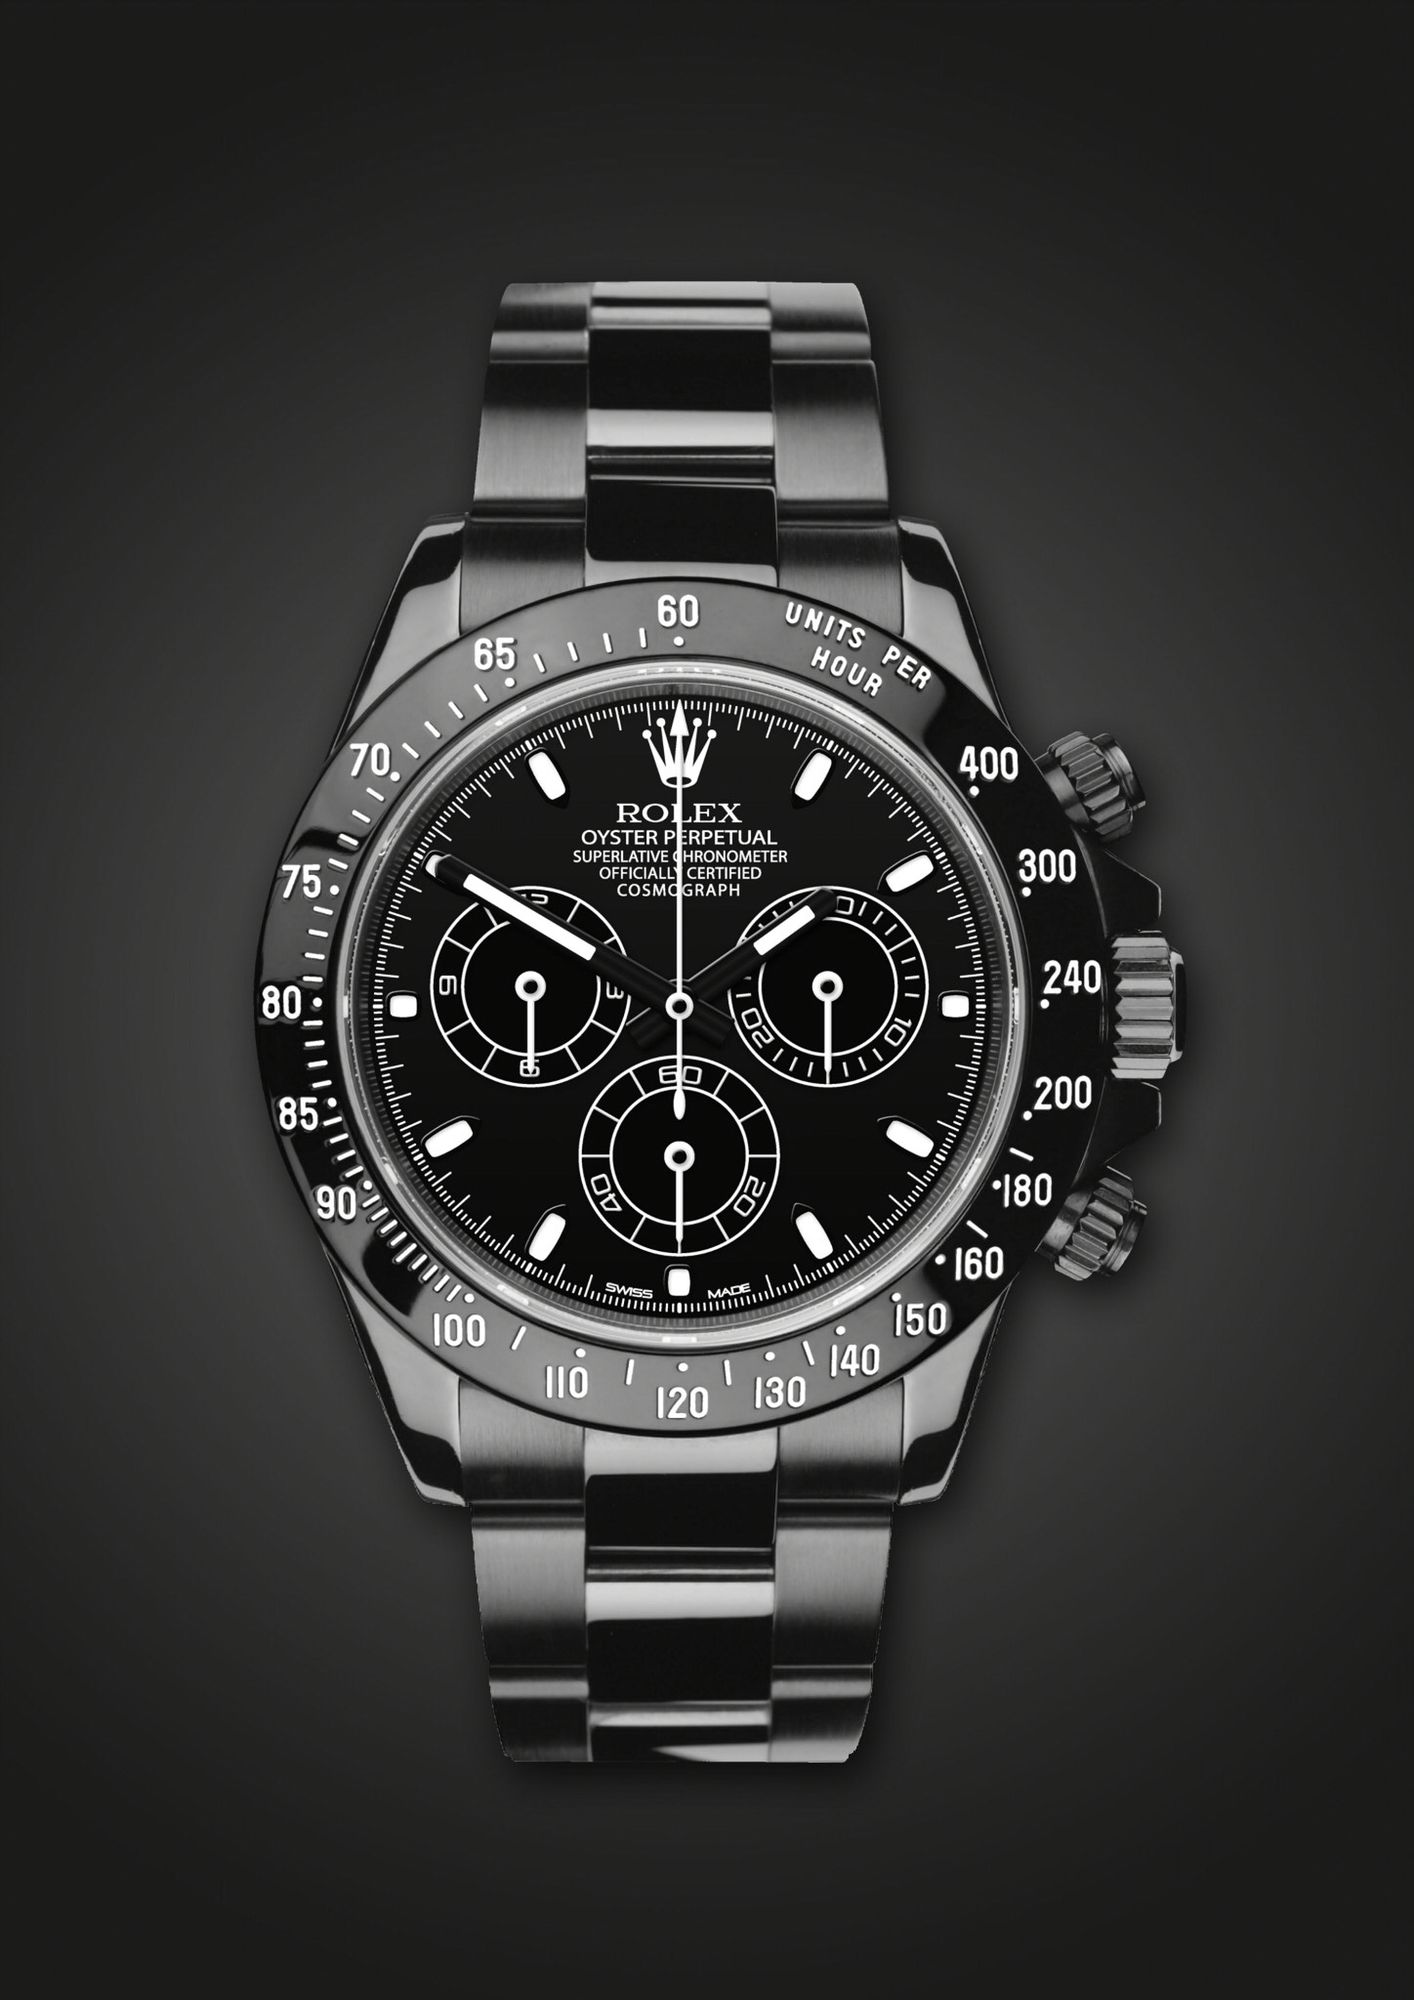 Sell Rolex Watches Online! Immediate Payments and Free Shipping! Visit www.LuxuryBuyers.com #rolexwatches